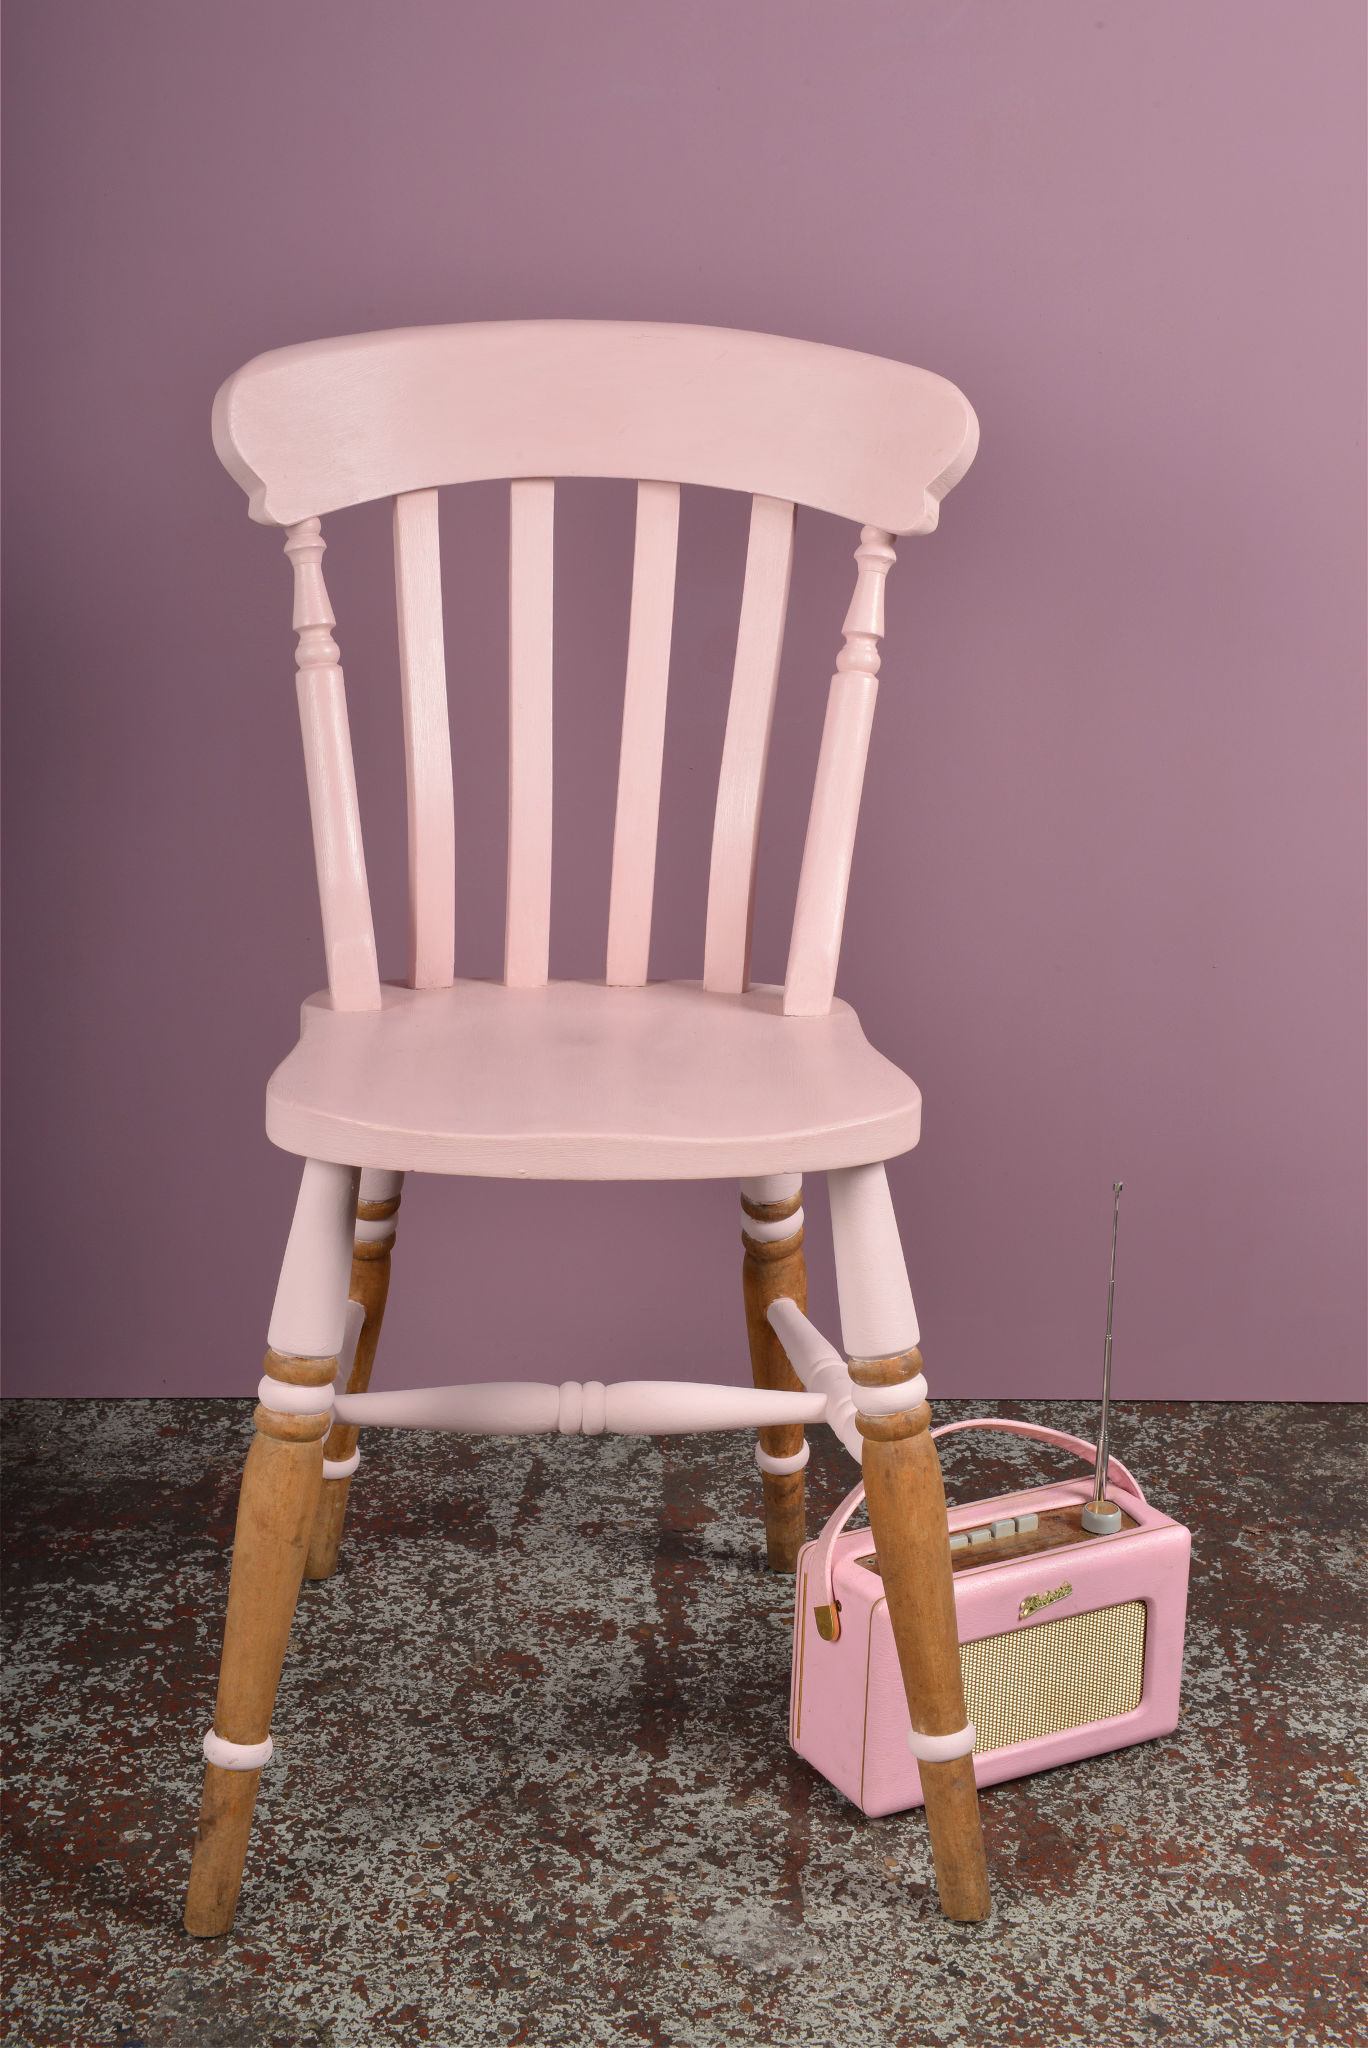 Rosie Posie Chair with props